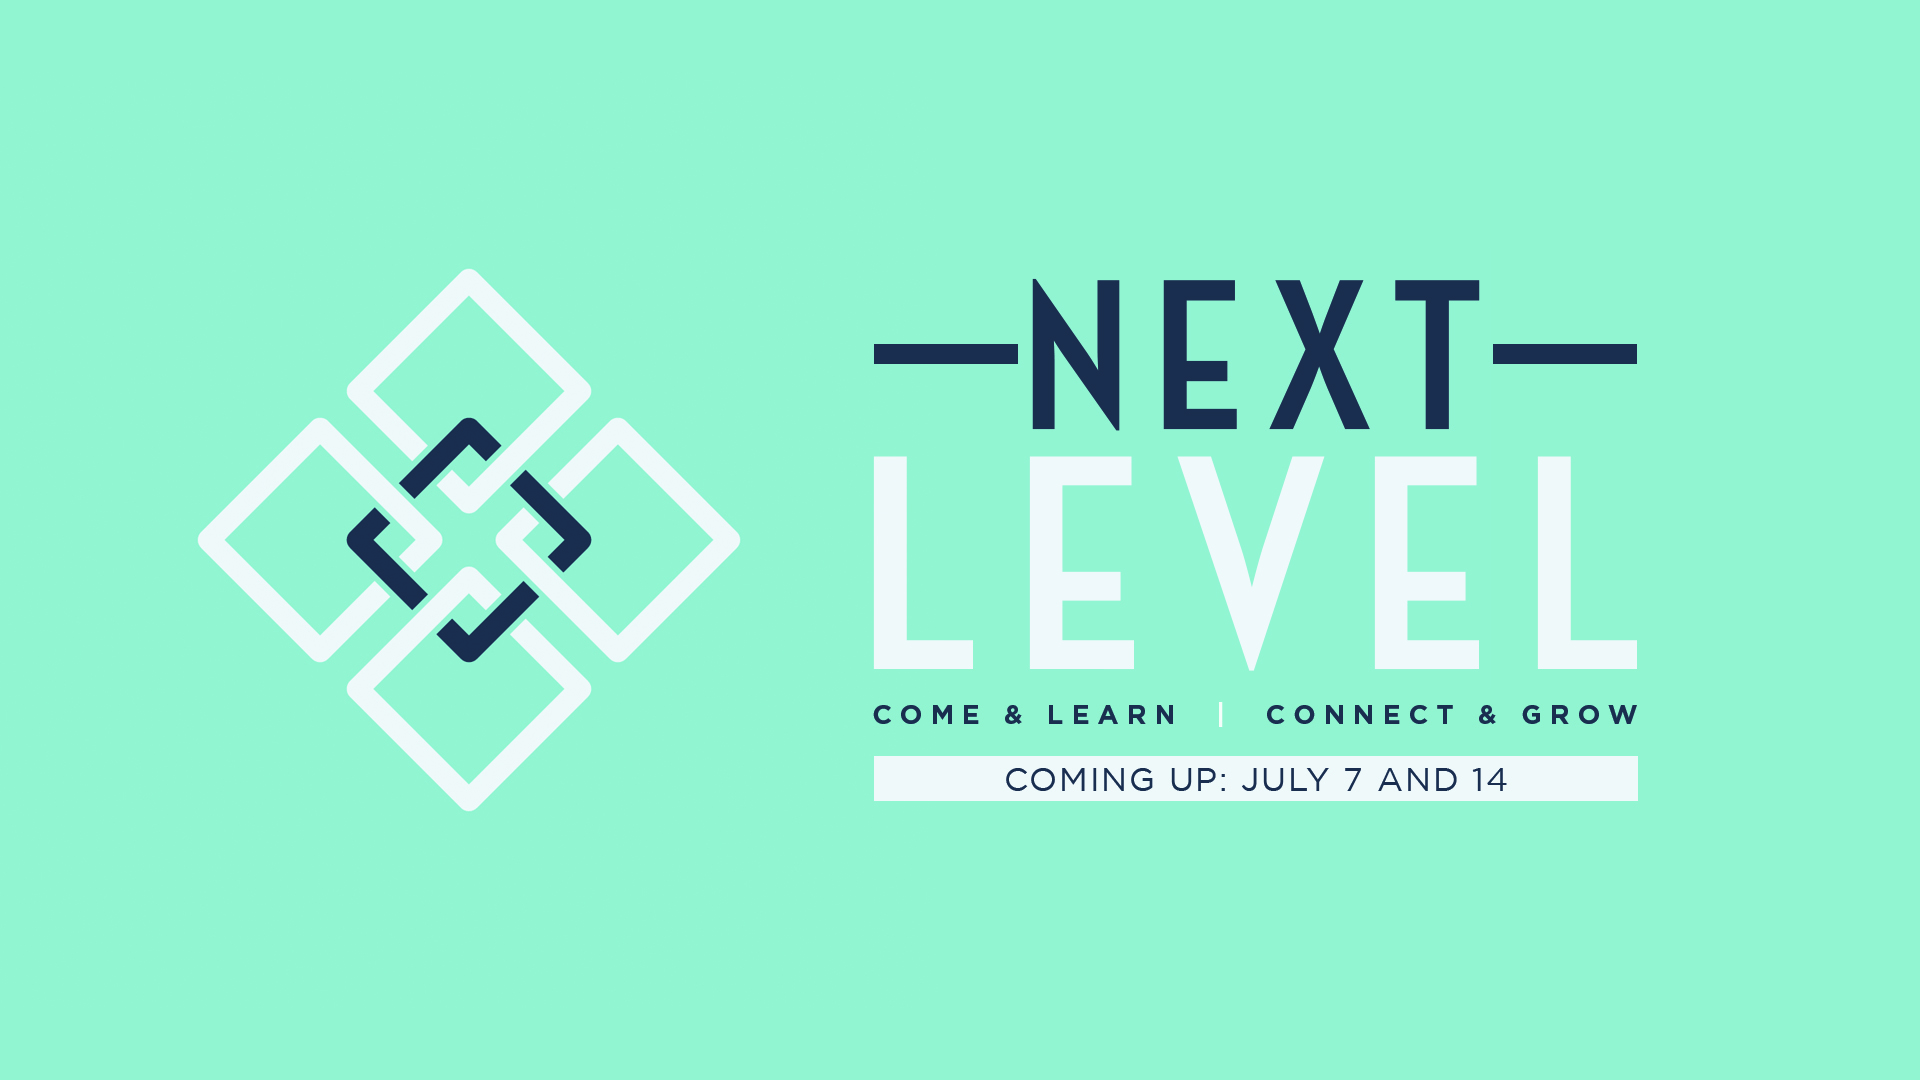 jpg-june-nextlevel image